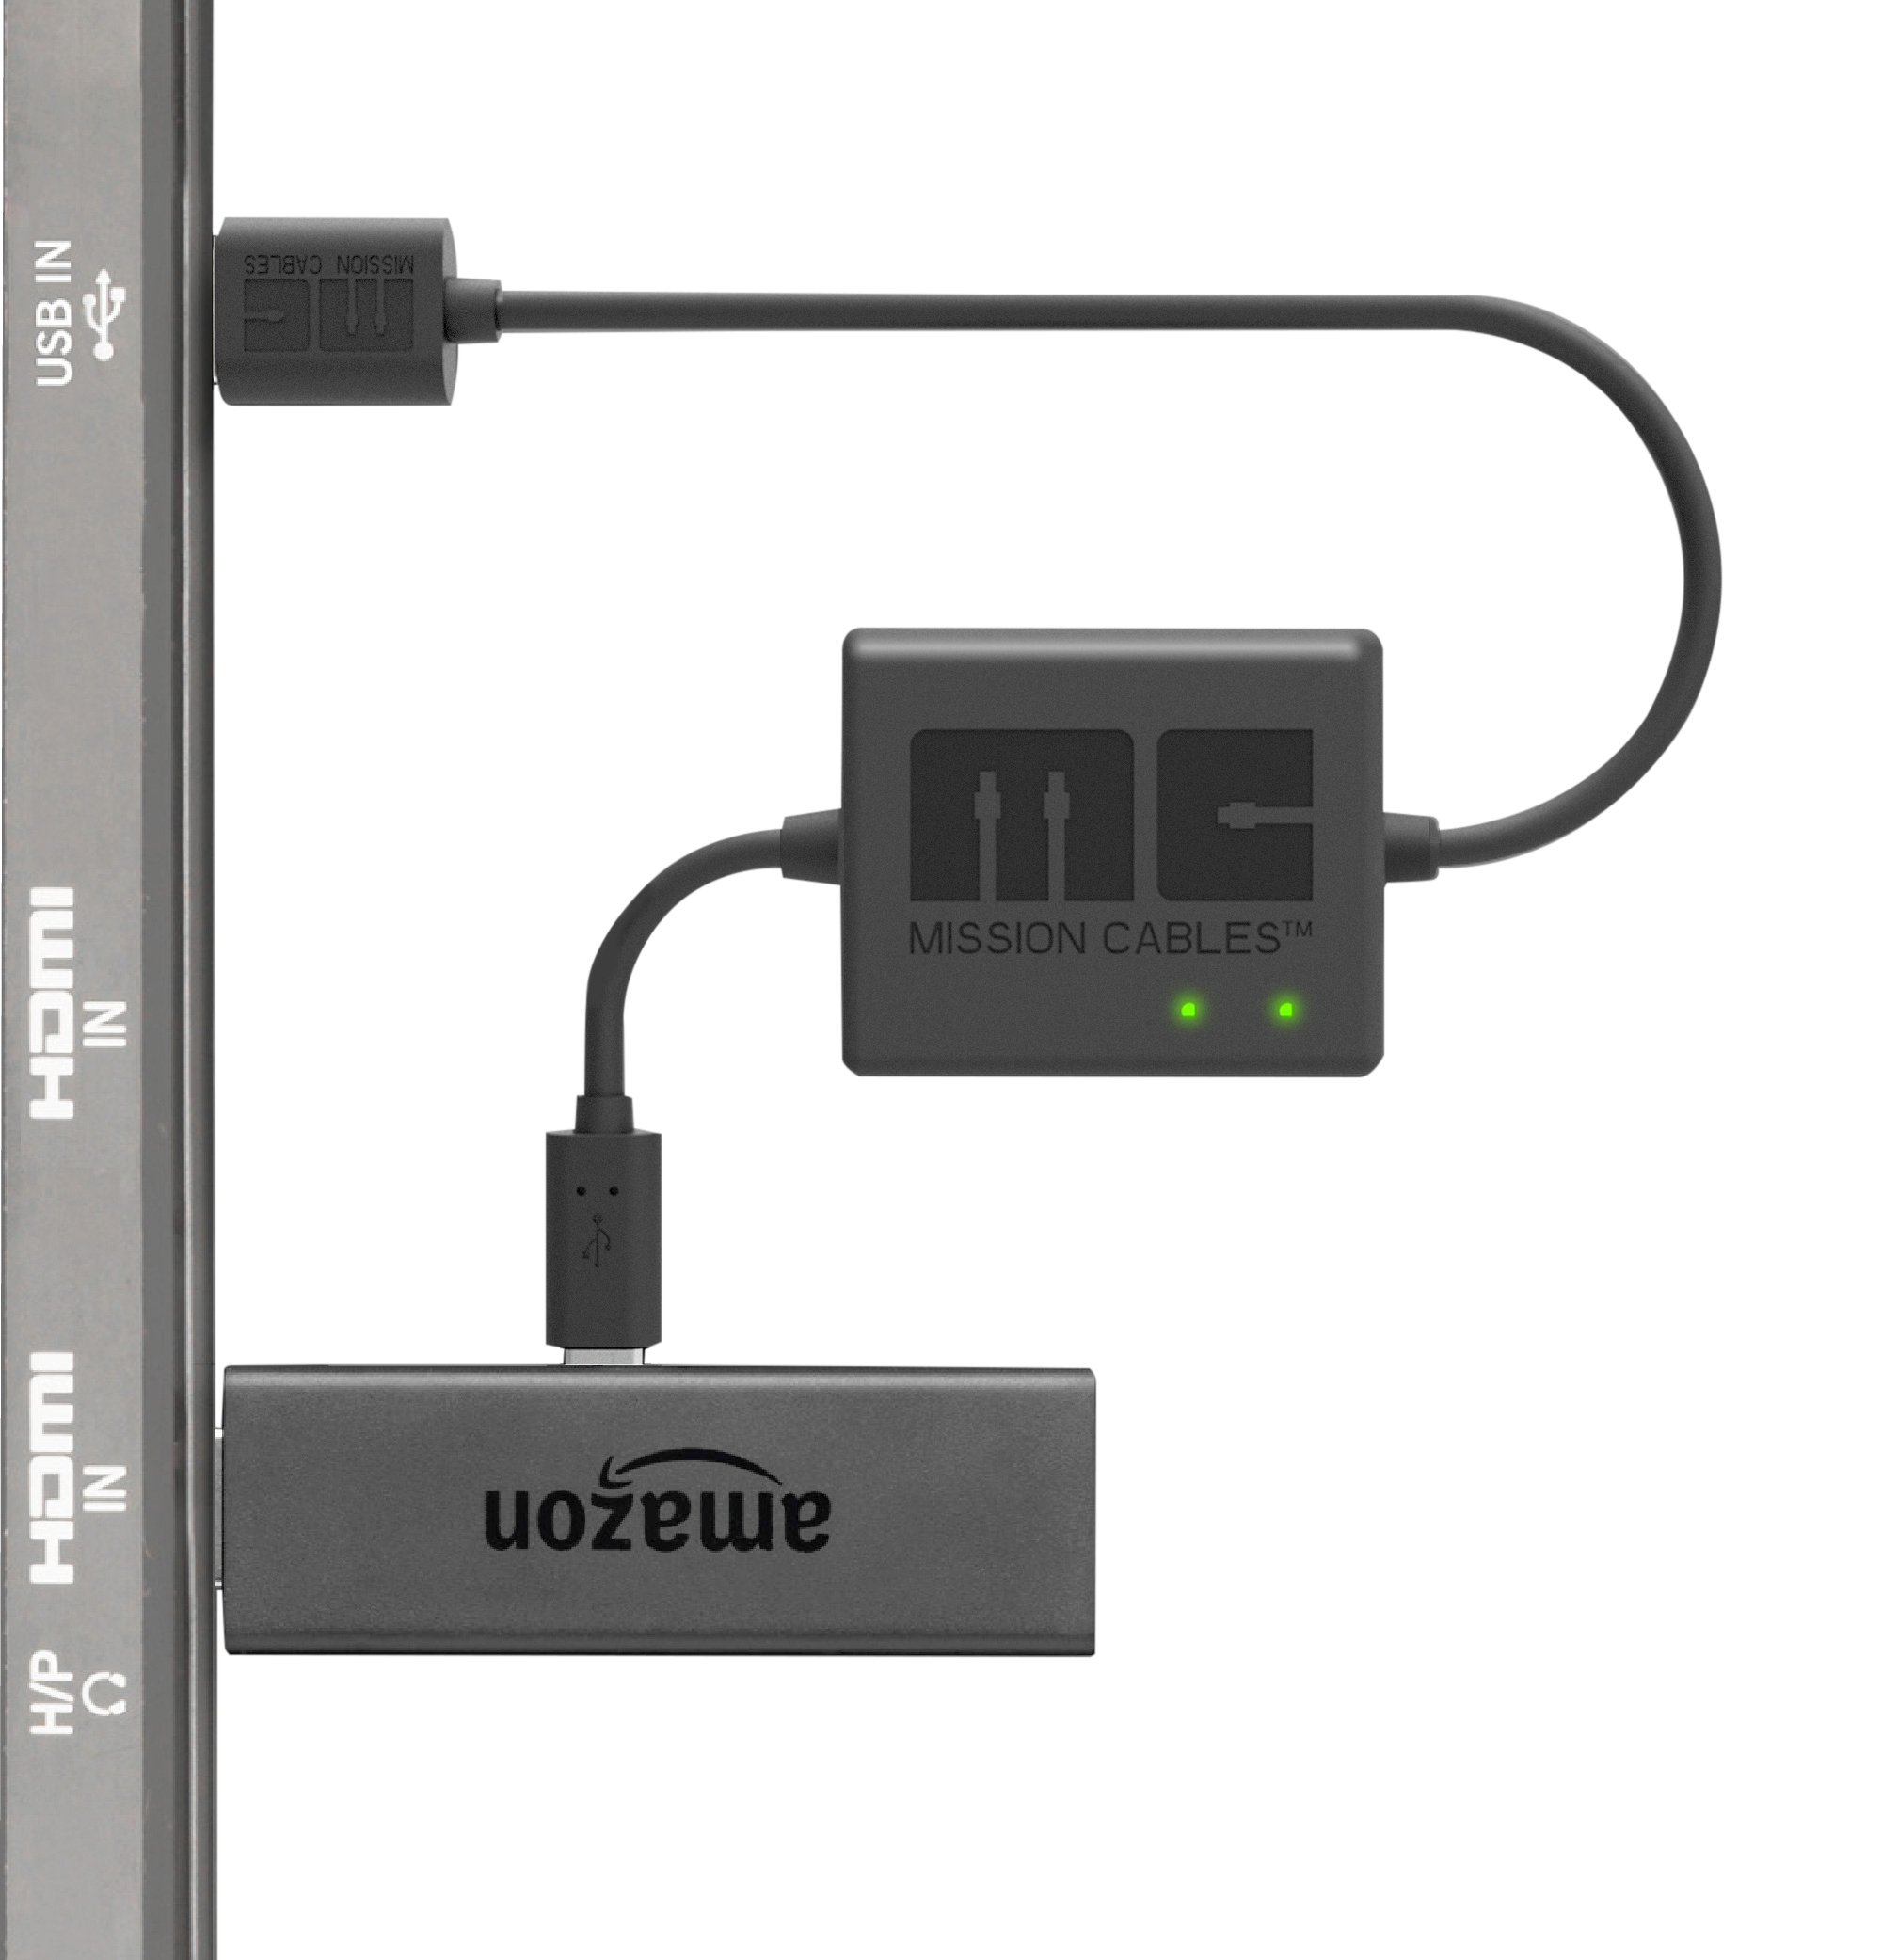 Mission Cables USB Power Cable for Amazon Fire TV Stick (Eliminate the need for AC Adapter)